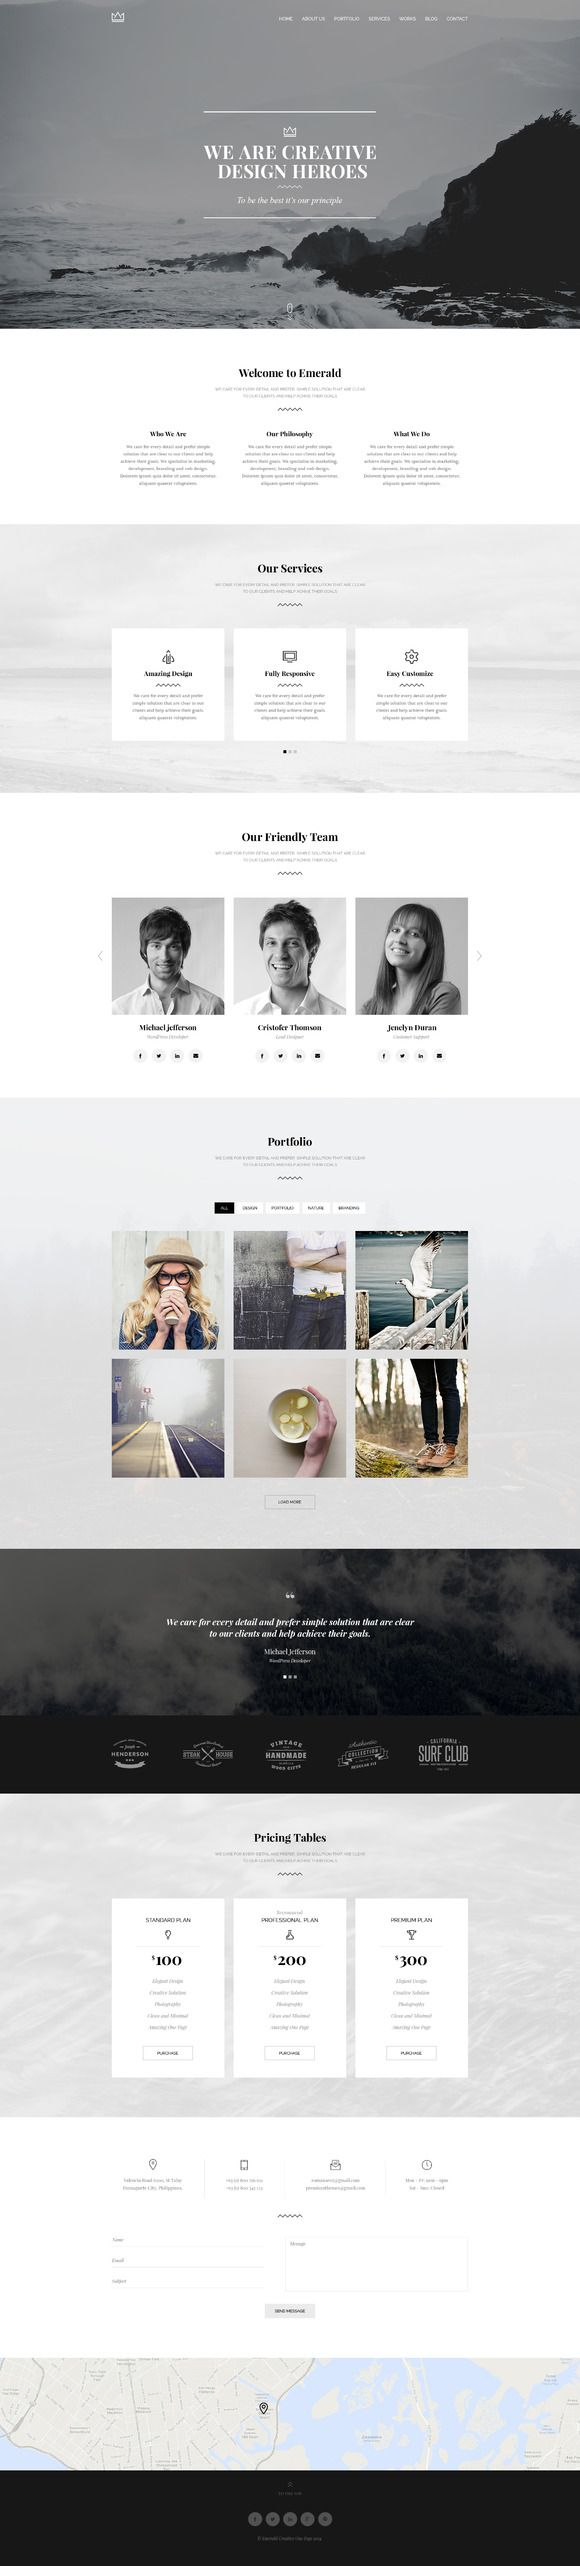 Check out Emerald - Creative Minimal Onepage by Romaximus on Creative Market